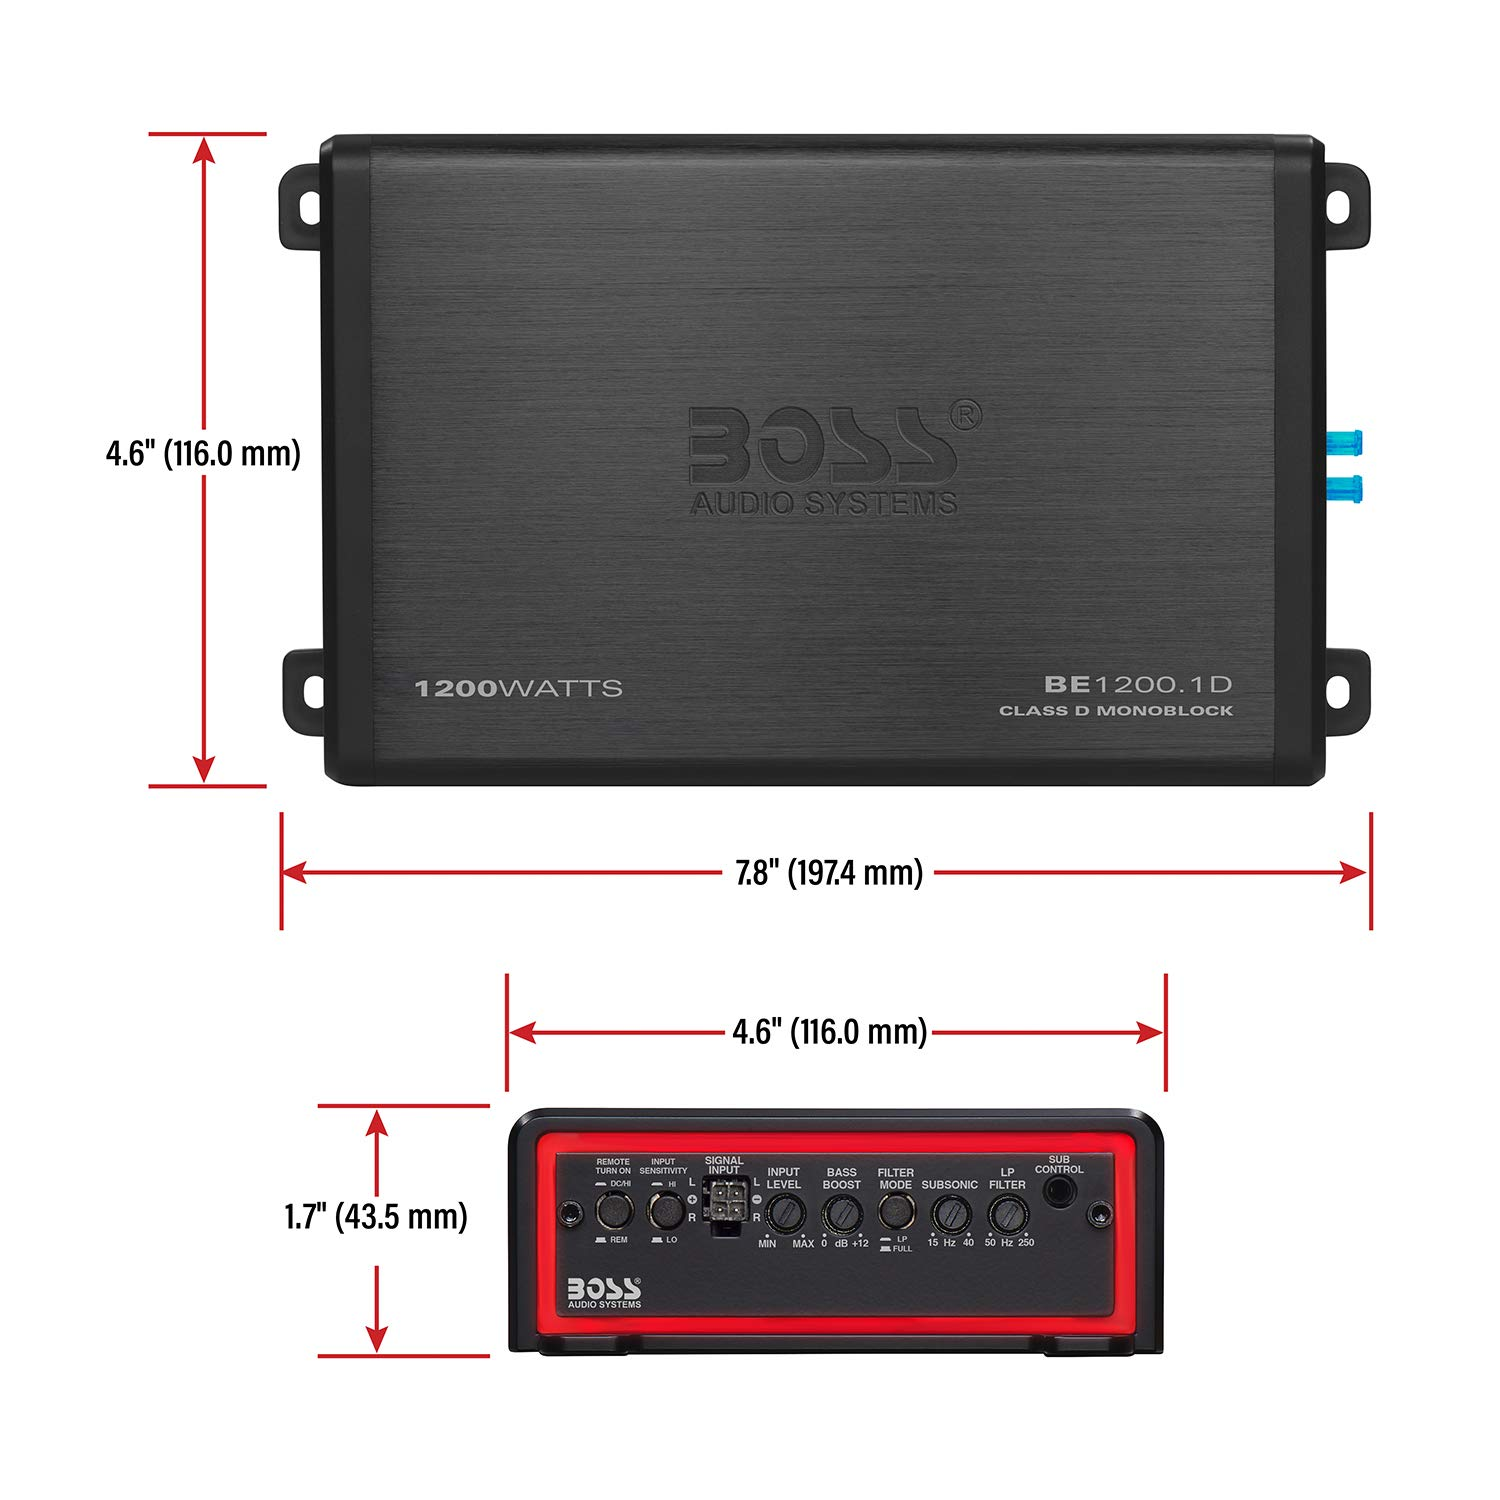 BOSS Audio Systems Elite BE1200.1D Class D Car Amplifier Monoblock Great for Subwoofers 1200 Watts 1 Ohm Stable Mosfet Power Supply Digital